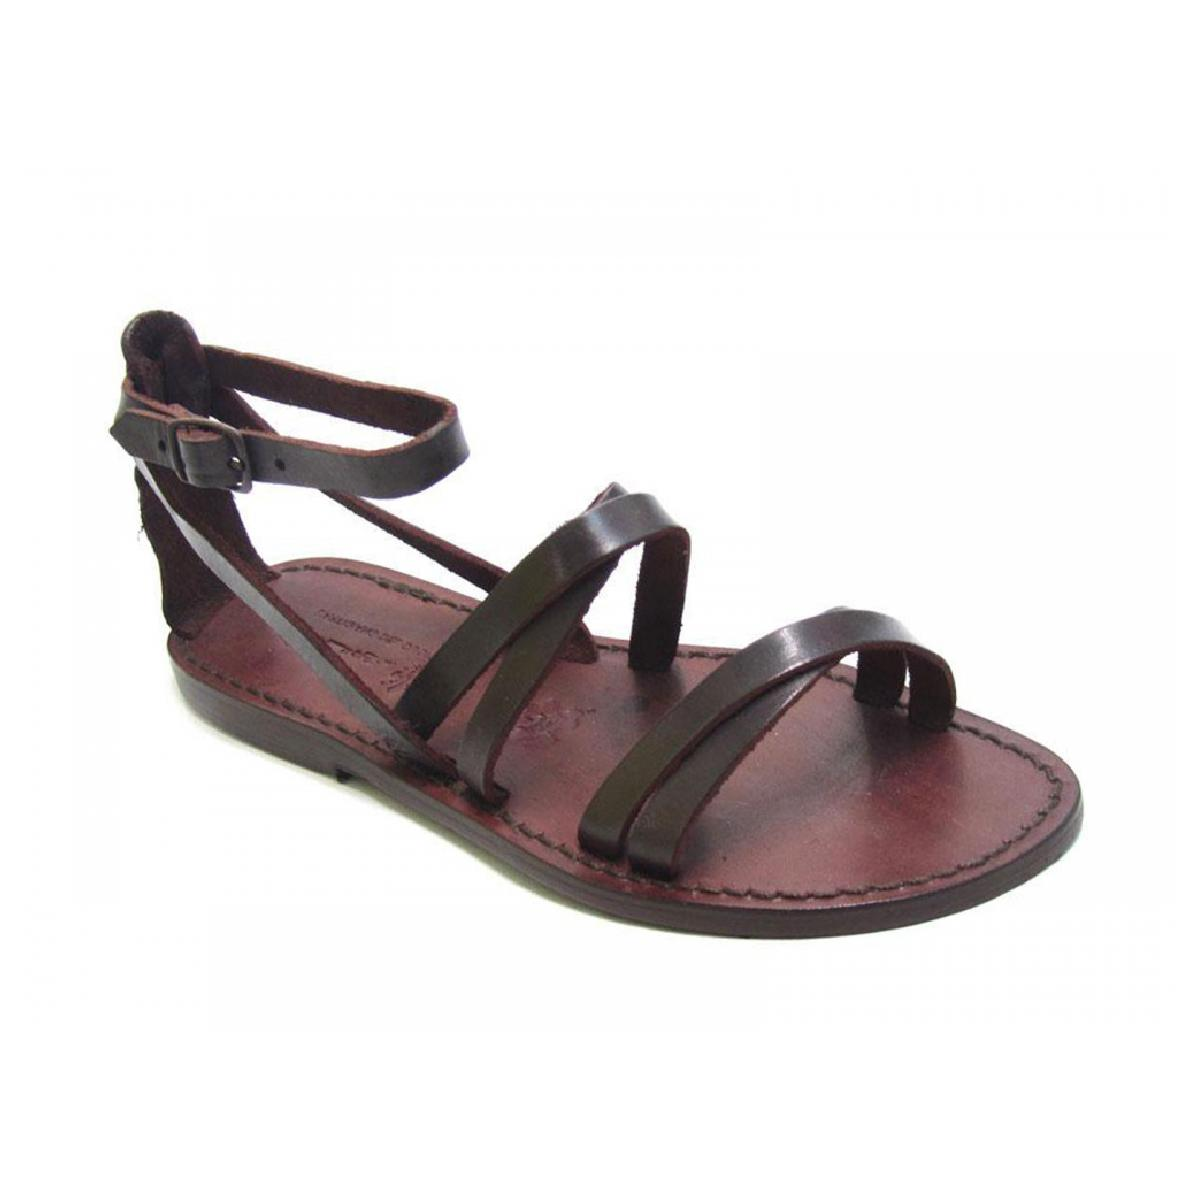 handmade s flat sandals brown leather